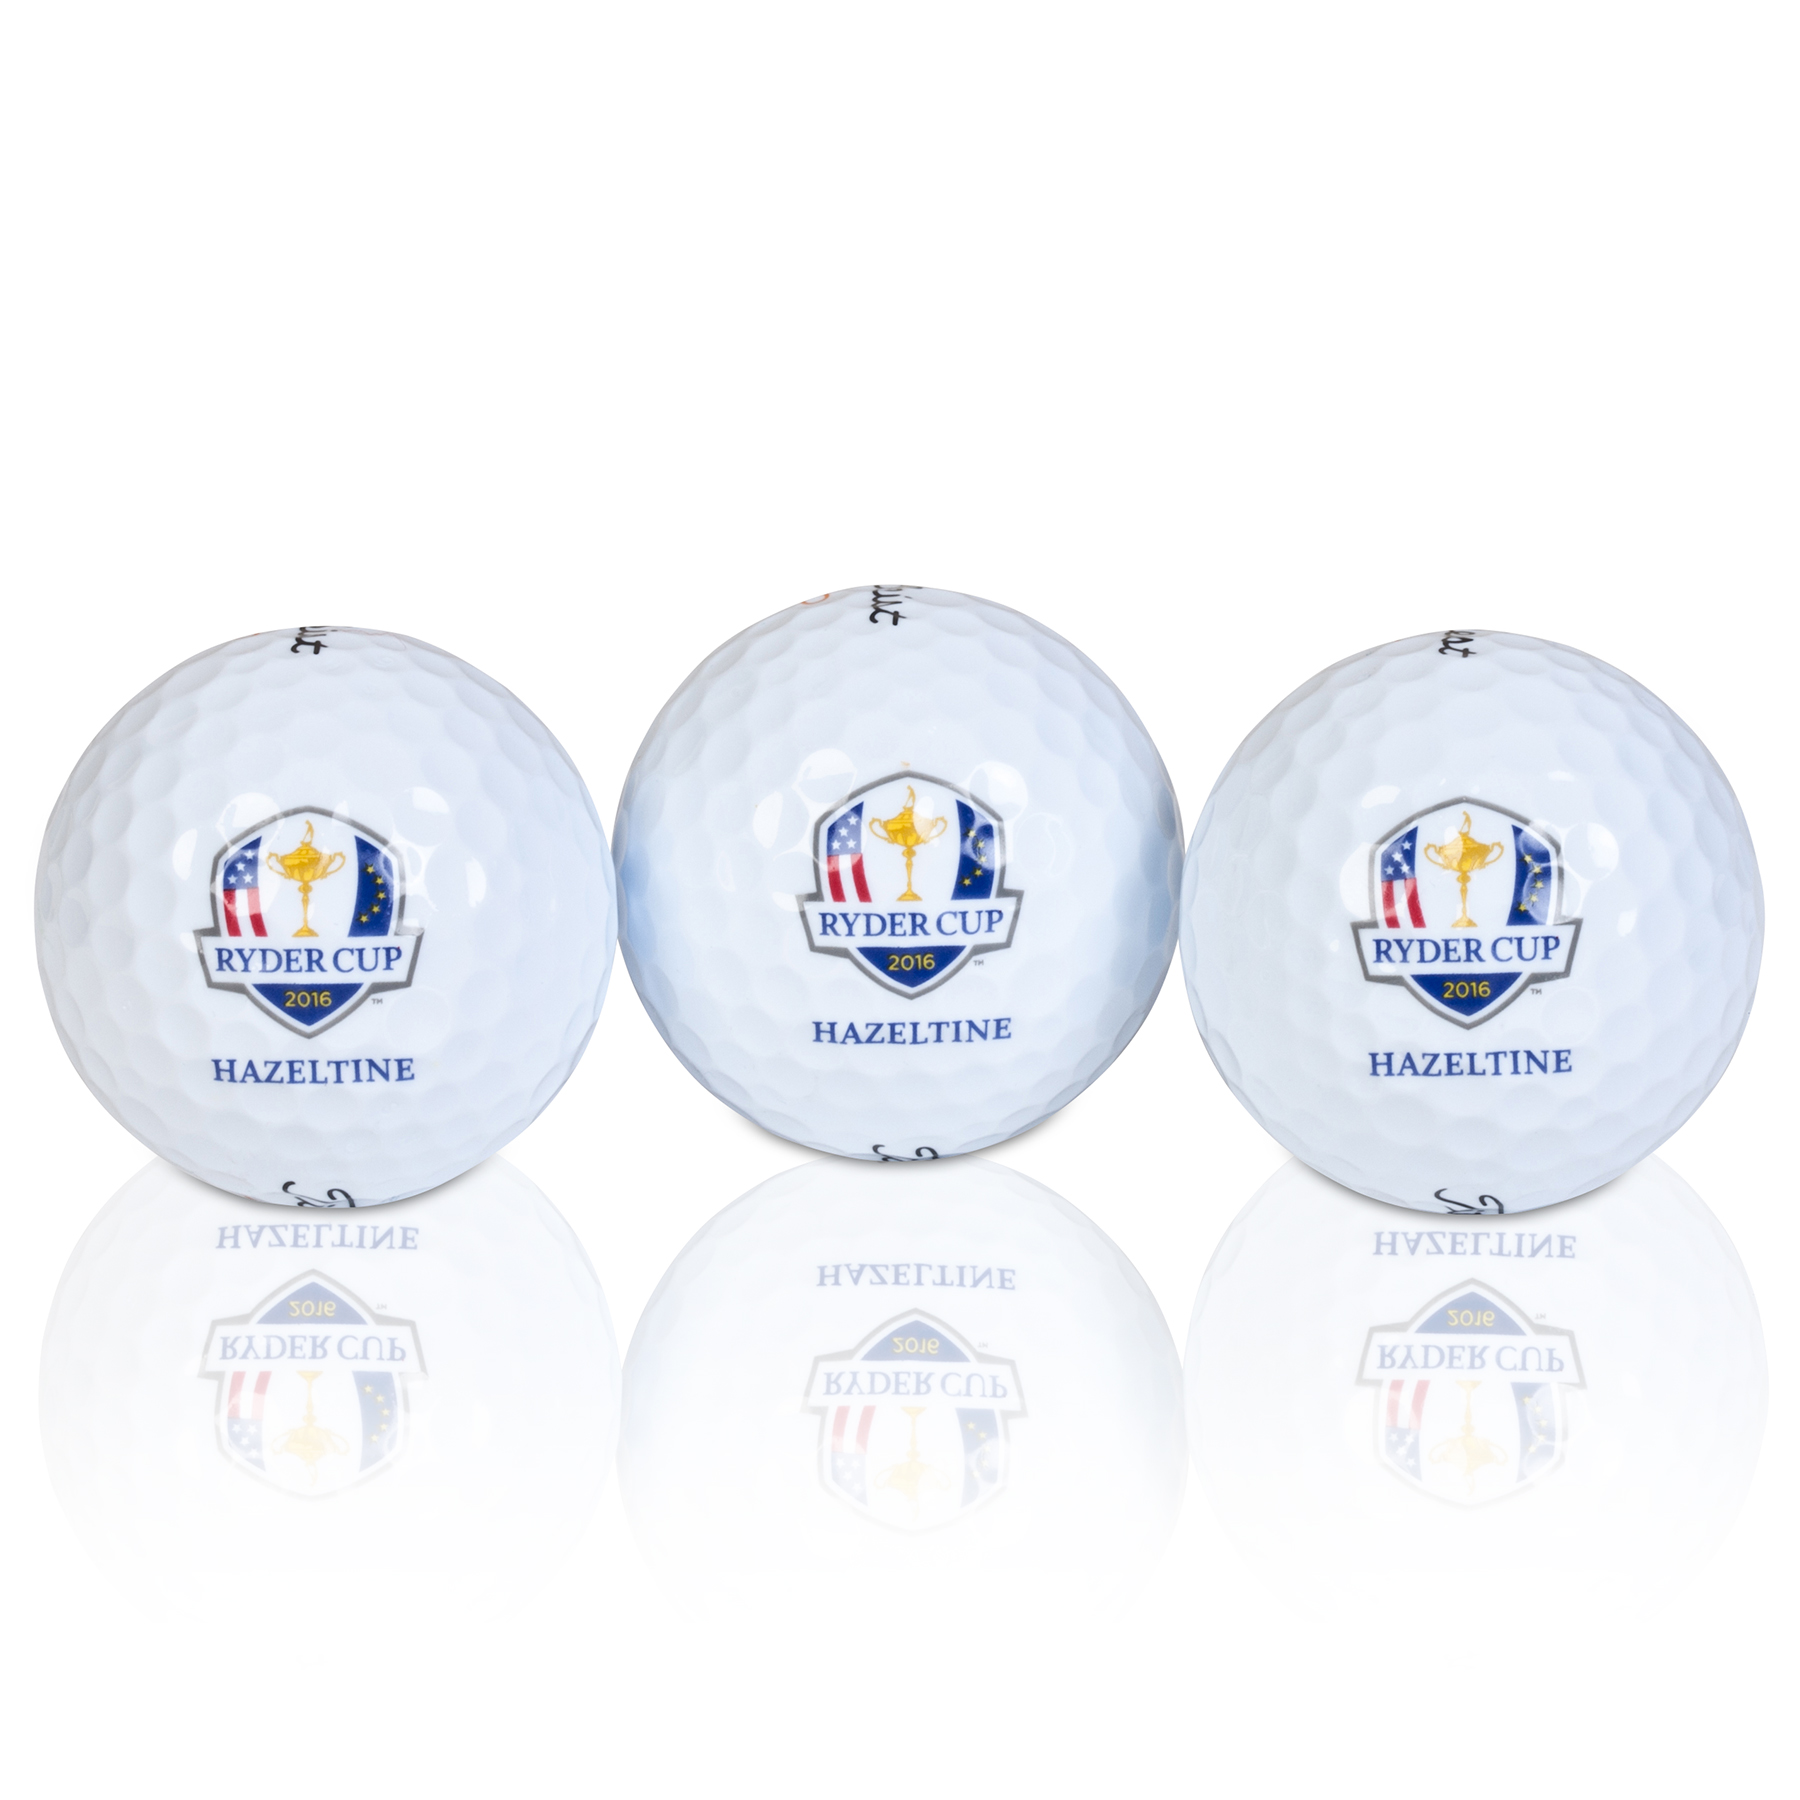 The 2016 Ryder Cup Sleeve of 3 Velocity Golf Balls